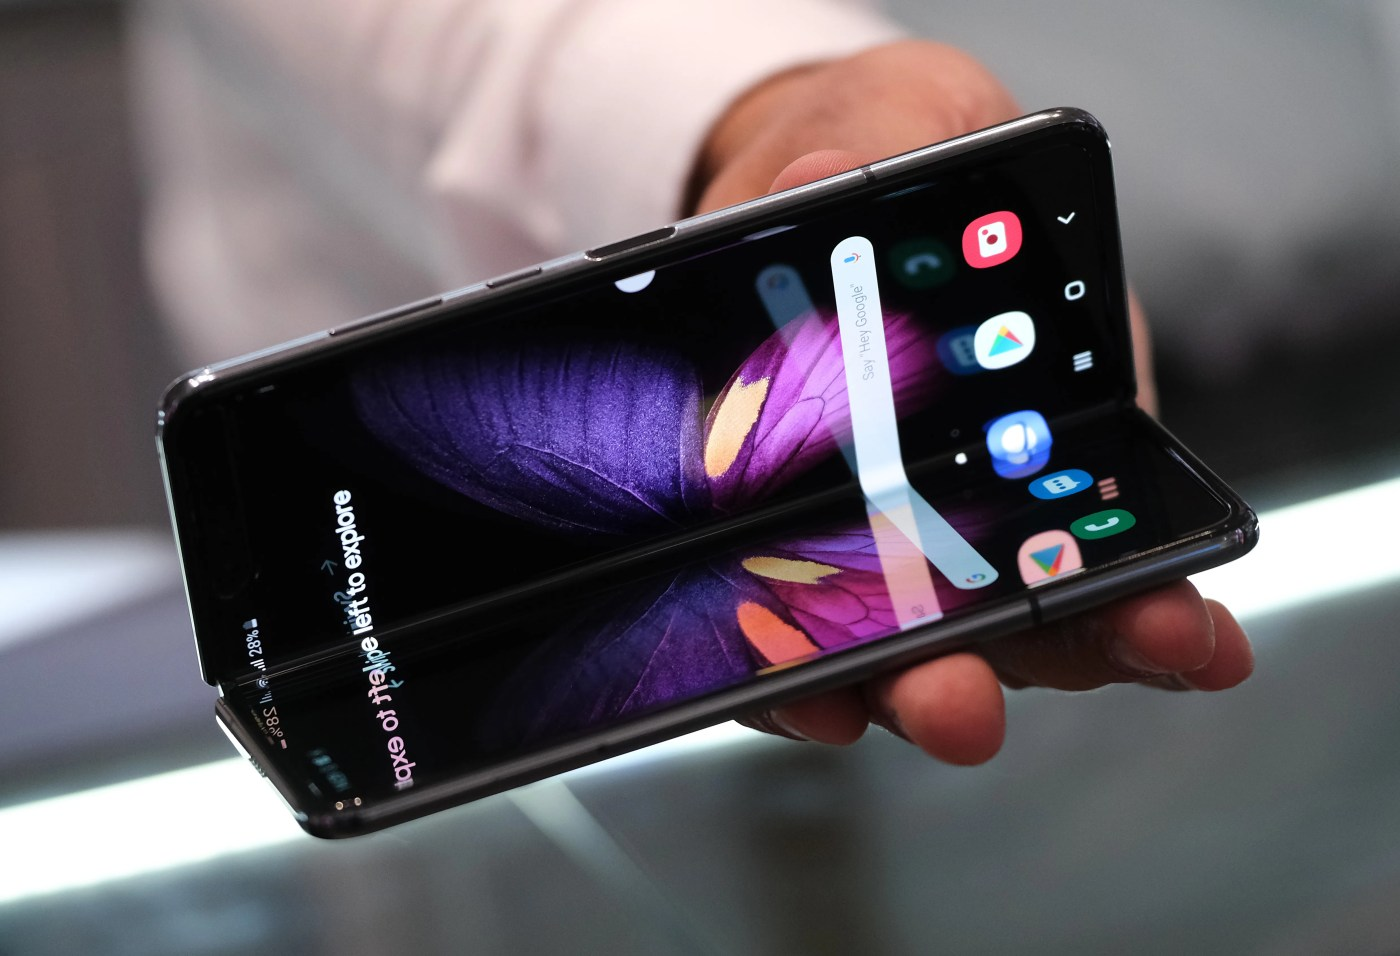 A host displays the new Samsung Galaxy Fold smartphone at the 2019 IFA home electronics and appliances trade fair on Sept. 5, 2019 in Berlin, Germany. The 2019 IFA fair will be open to the public from Sept. 6-11.